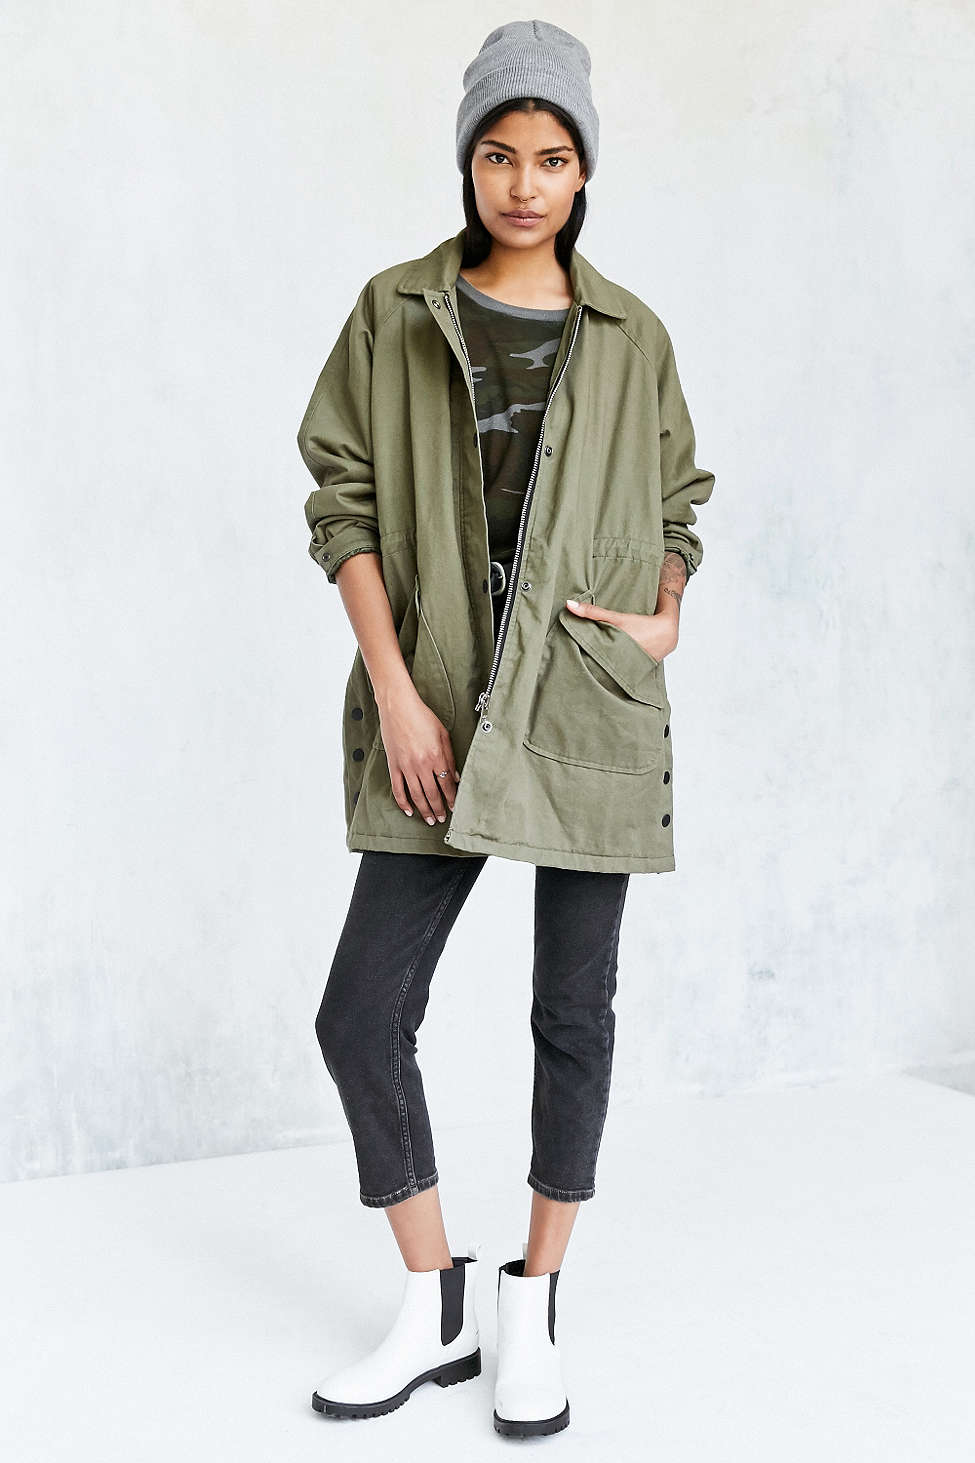 Everyone should have an anorak in their closet - these jackets pair perfectly with a T-shirt + denim for the perfect casual weekend look. This oversized army green jacket is absolutely perfect for fall!